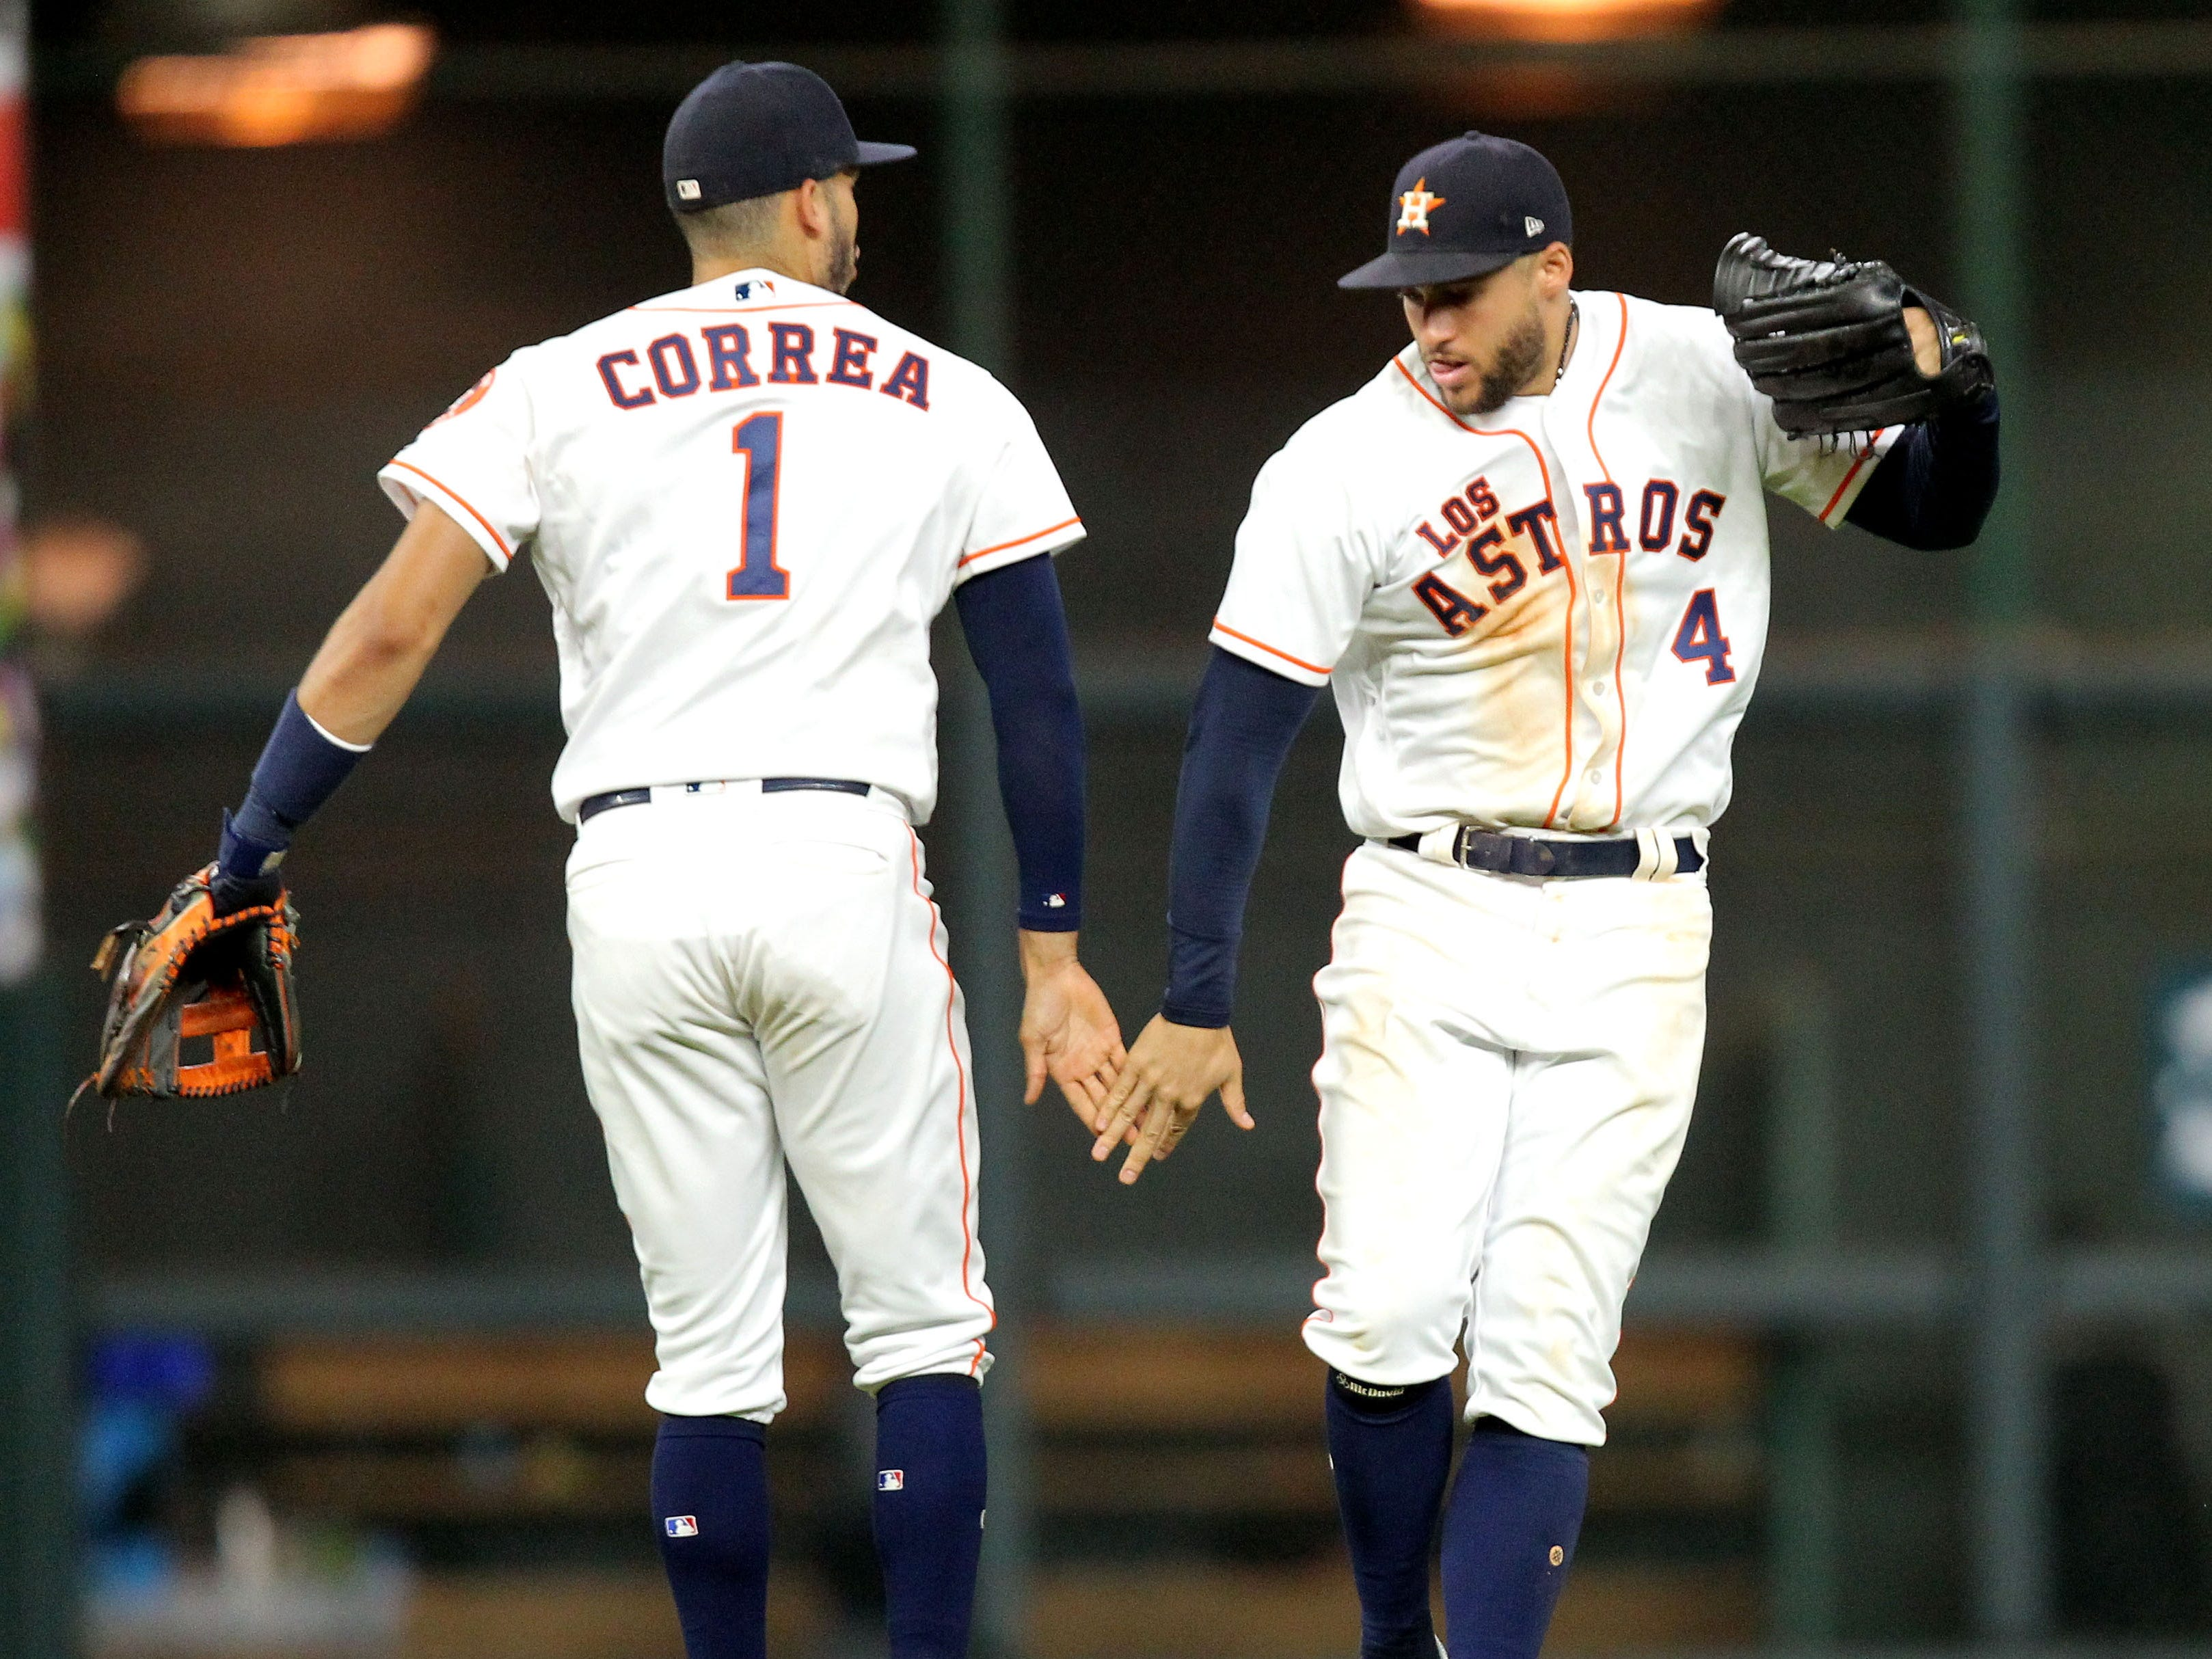 Sep 15, 2018; Houston, TX, USA; Houston Astros shortstop Carlos Correa (1, left) and center fielder George Springer (4, right) celebrate after the final out of Houston's 10-4 win over the Arizona Diamondbacks at Minute Maid Park. Mandatory Credit: Erik Williams-USA TODAY Sports